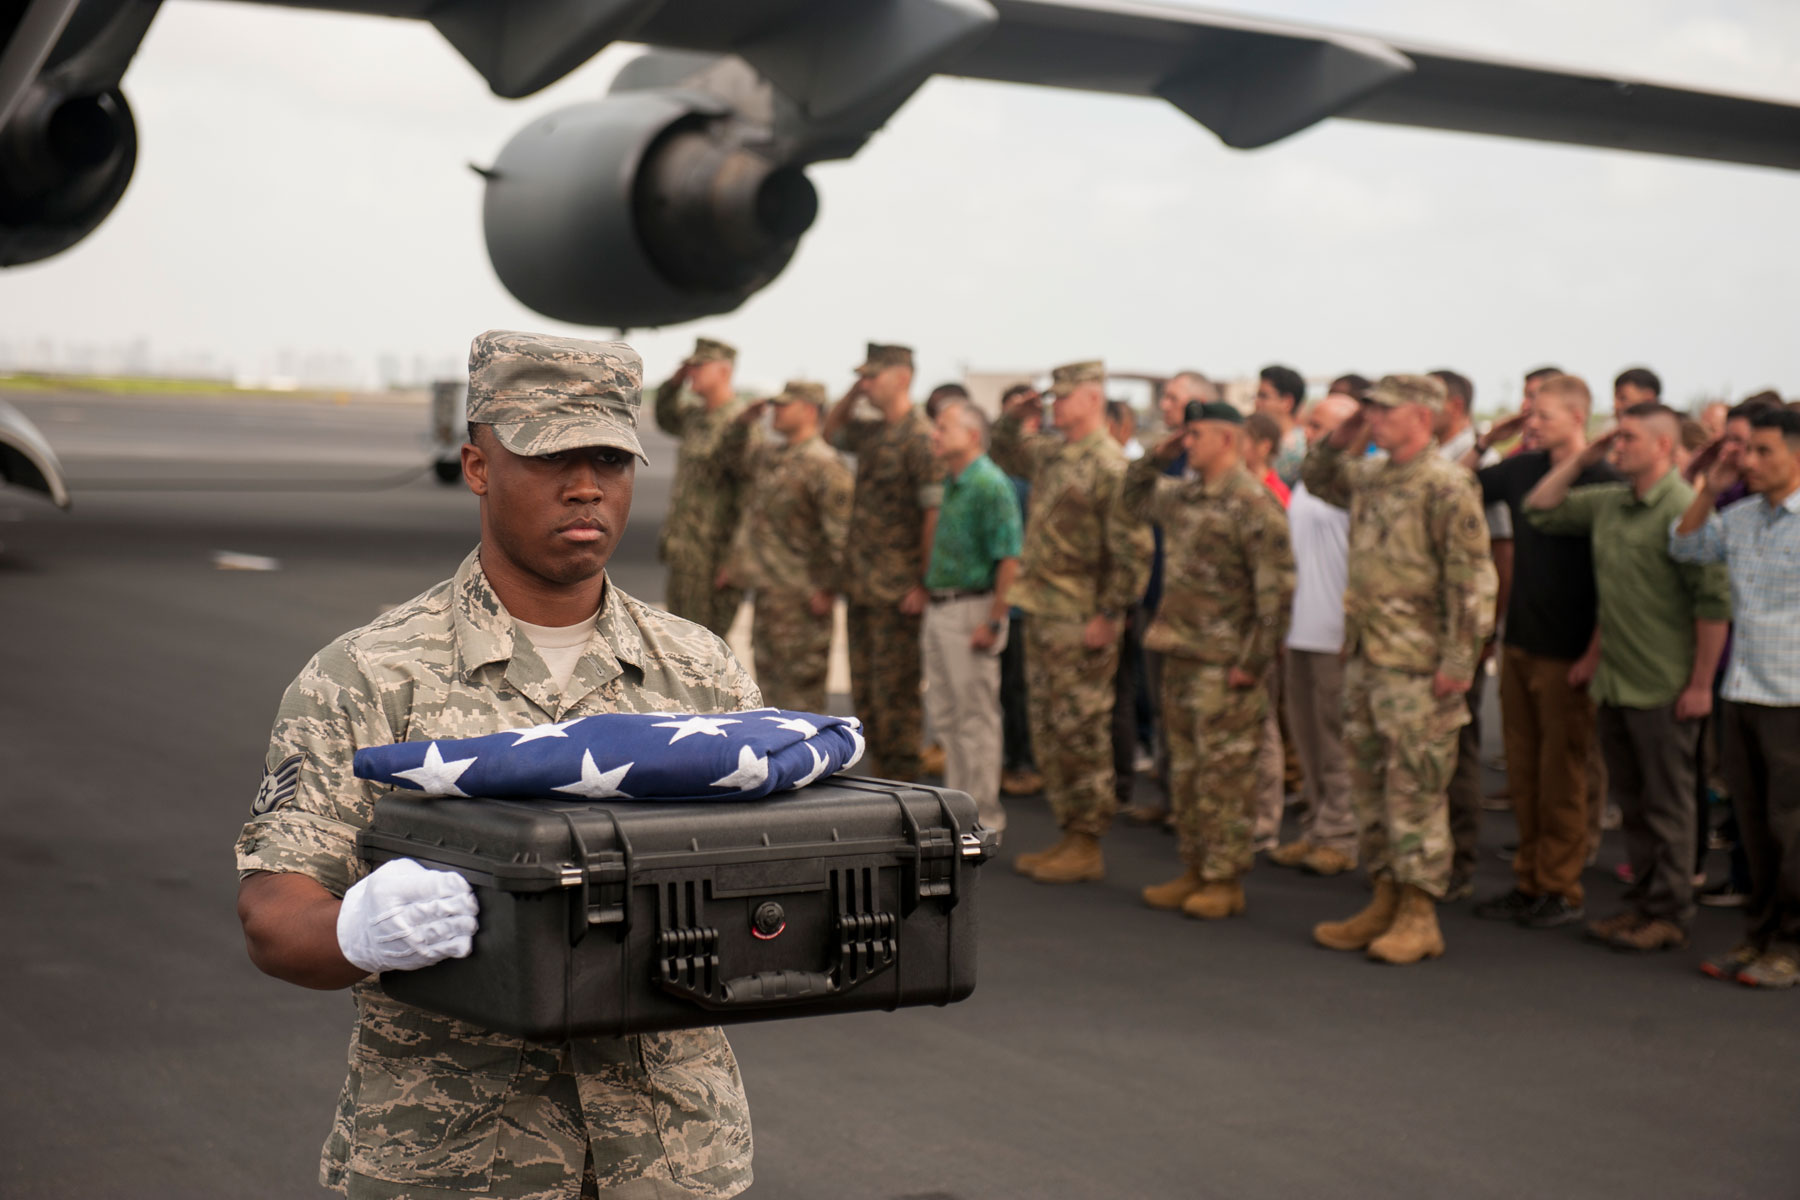 U.S. Air Force Staff Sgt. Sedric Franklin, an analyst with the Defense POW/MIA Accounting Agency (DPAA), carries a transfer case during a solemn movement at Joint Base Pearl Harbor-Hickam, Hawaii, April 15, 2018. (U.S. Air Force photo by Staff Sgt. Matthew J. Bruch)